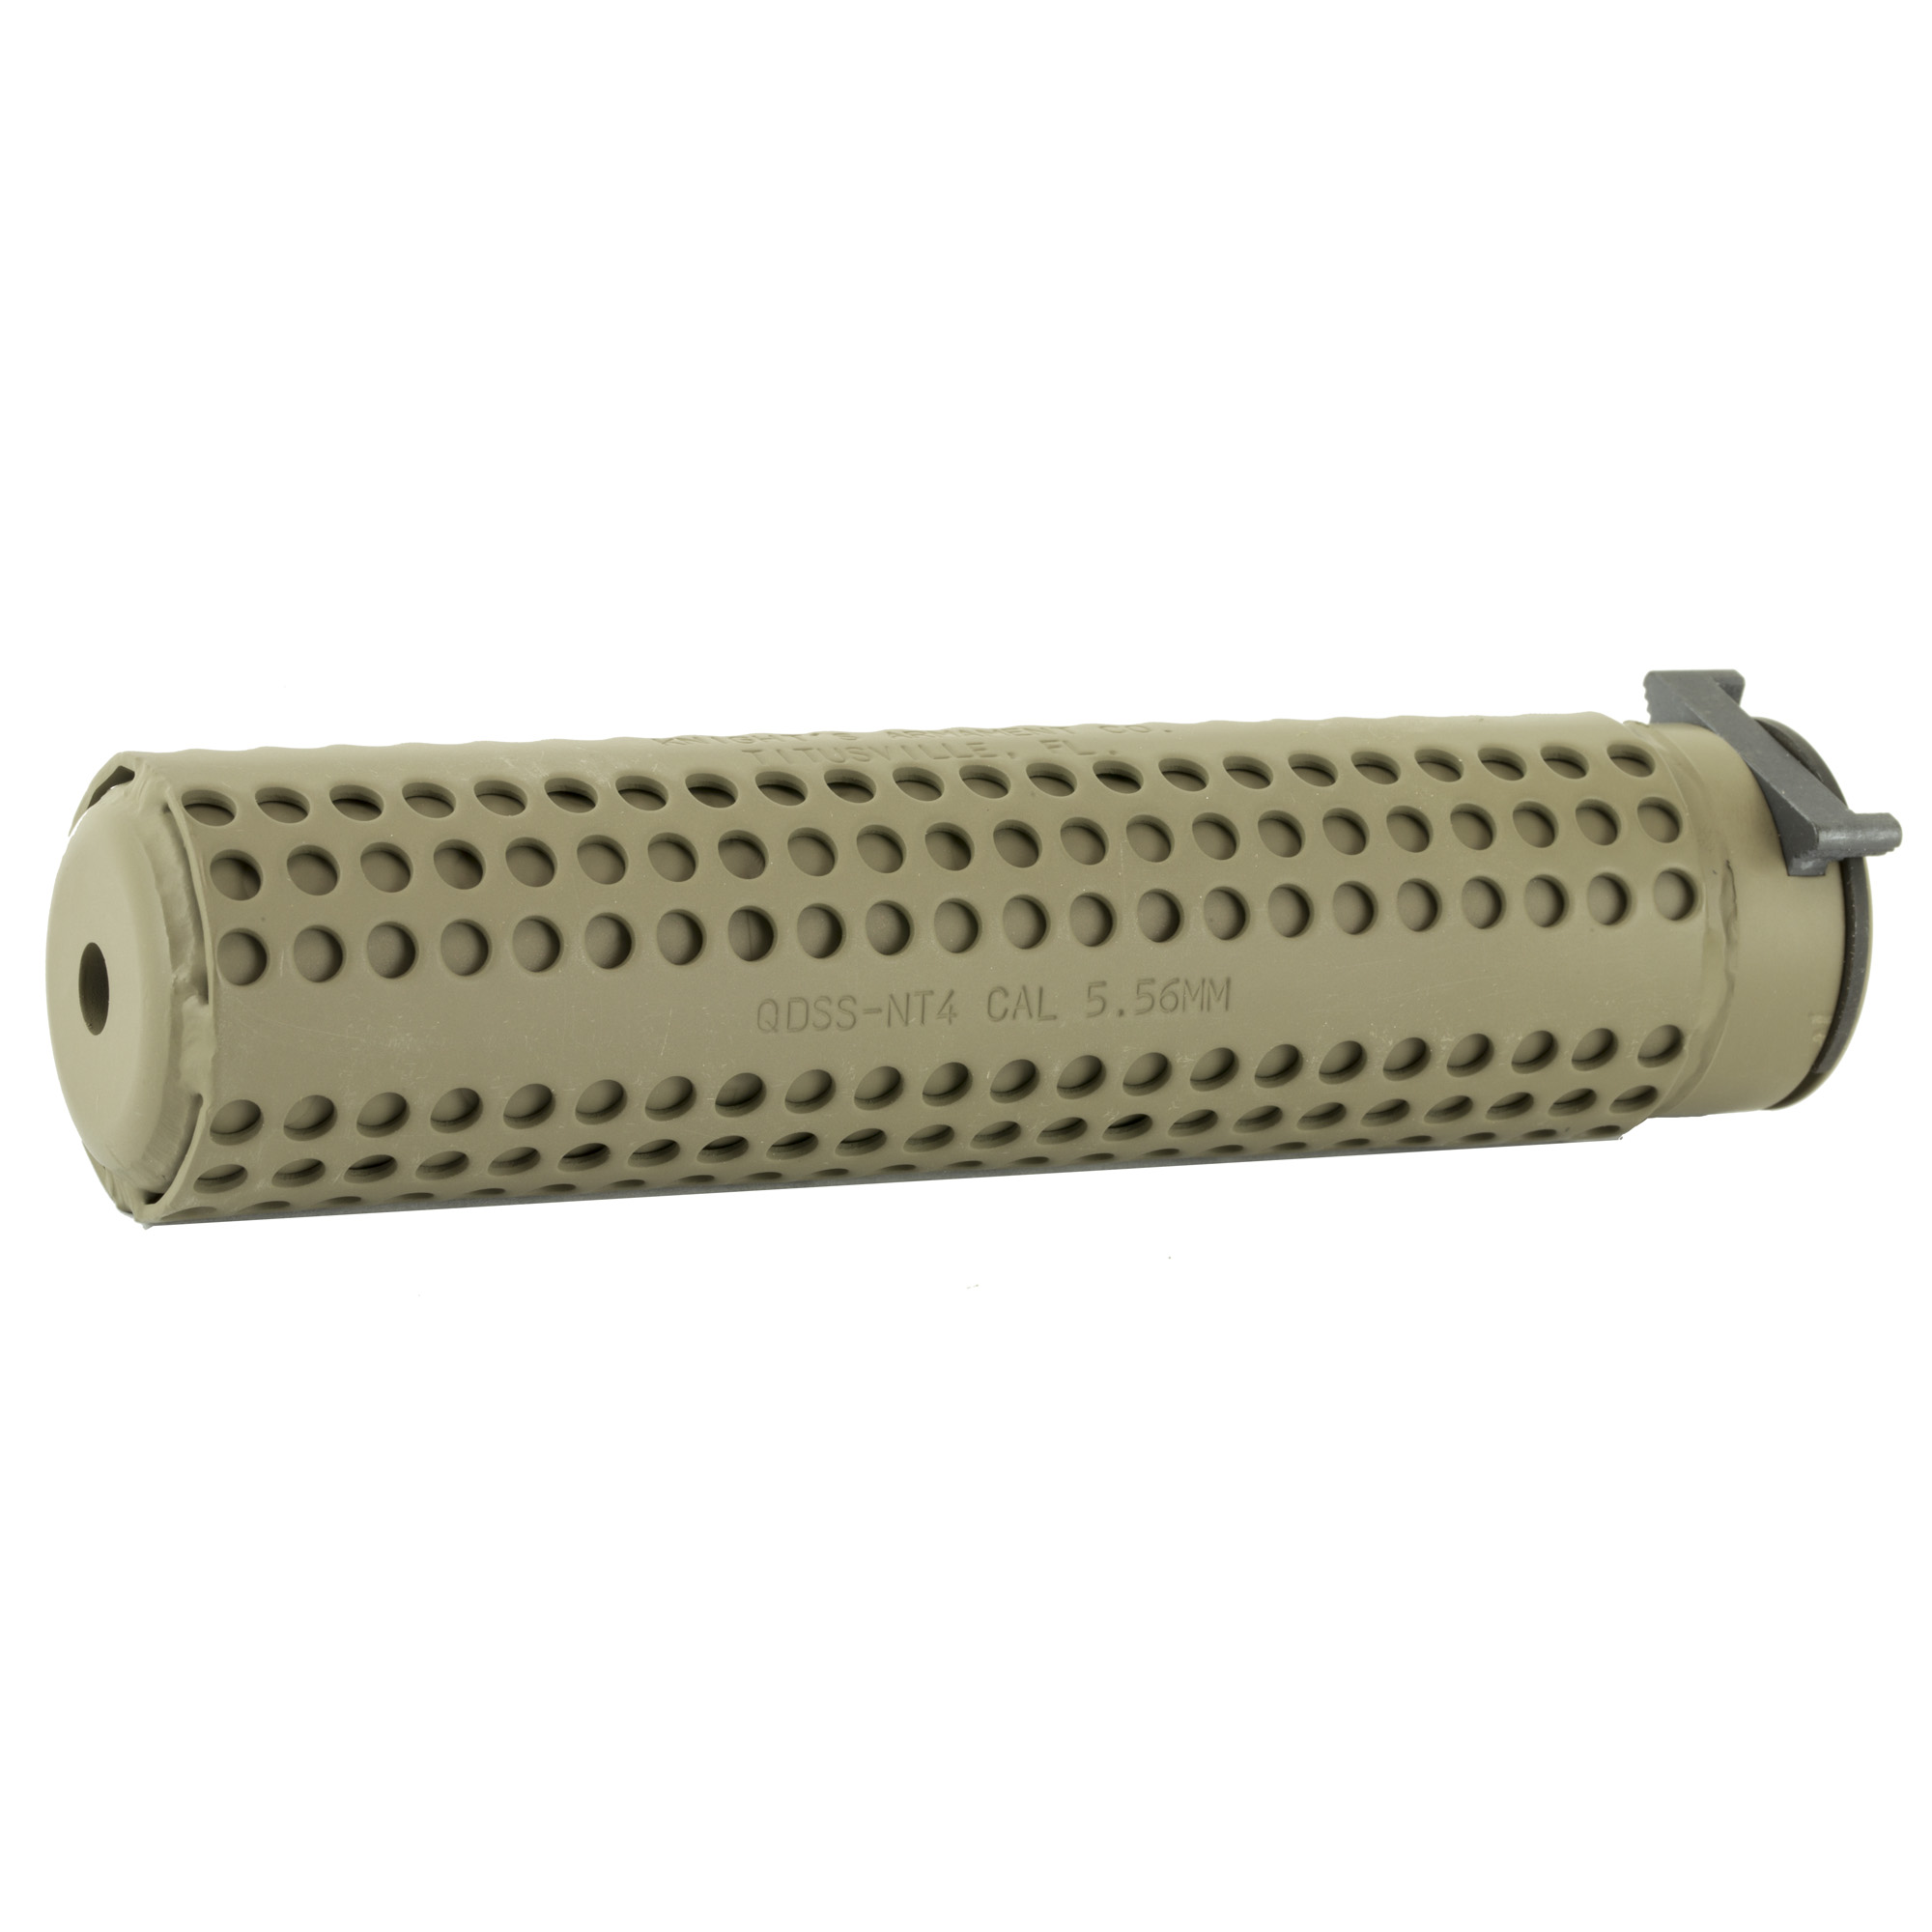 Kac 556qdss-nt4 Sprsr Kit 5.56mm Fde